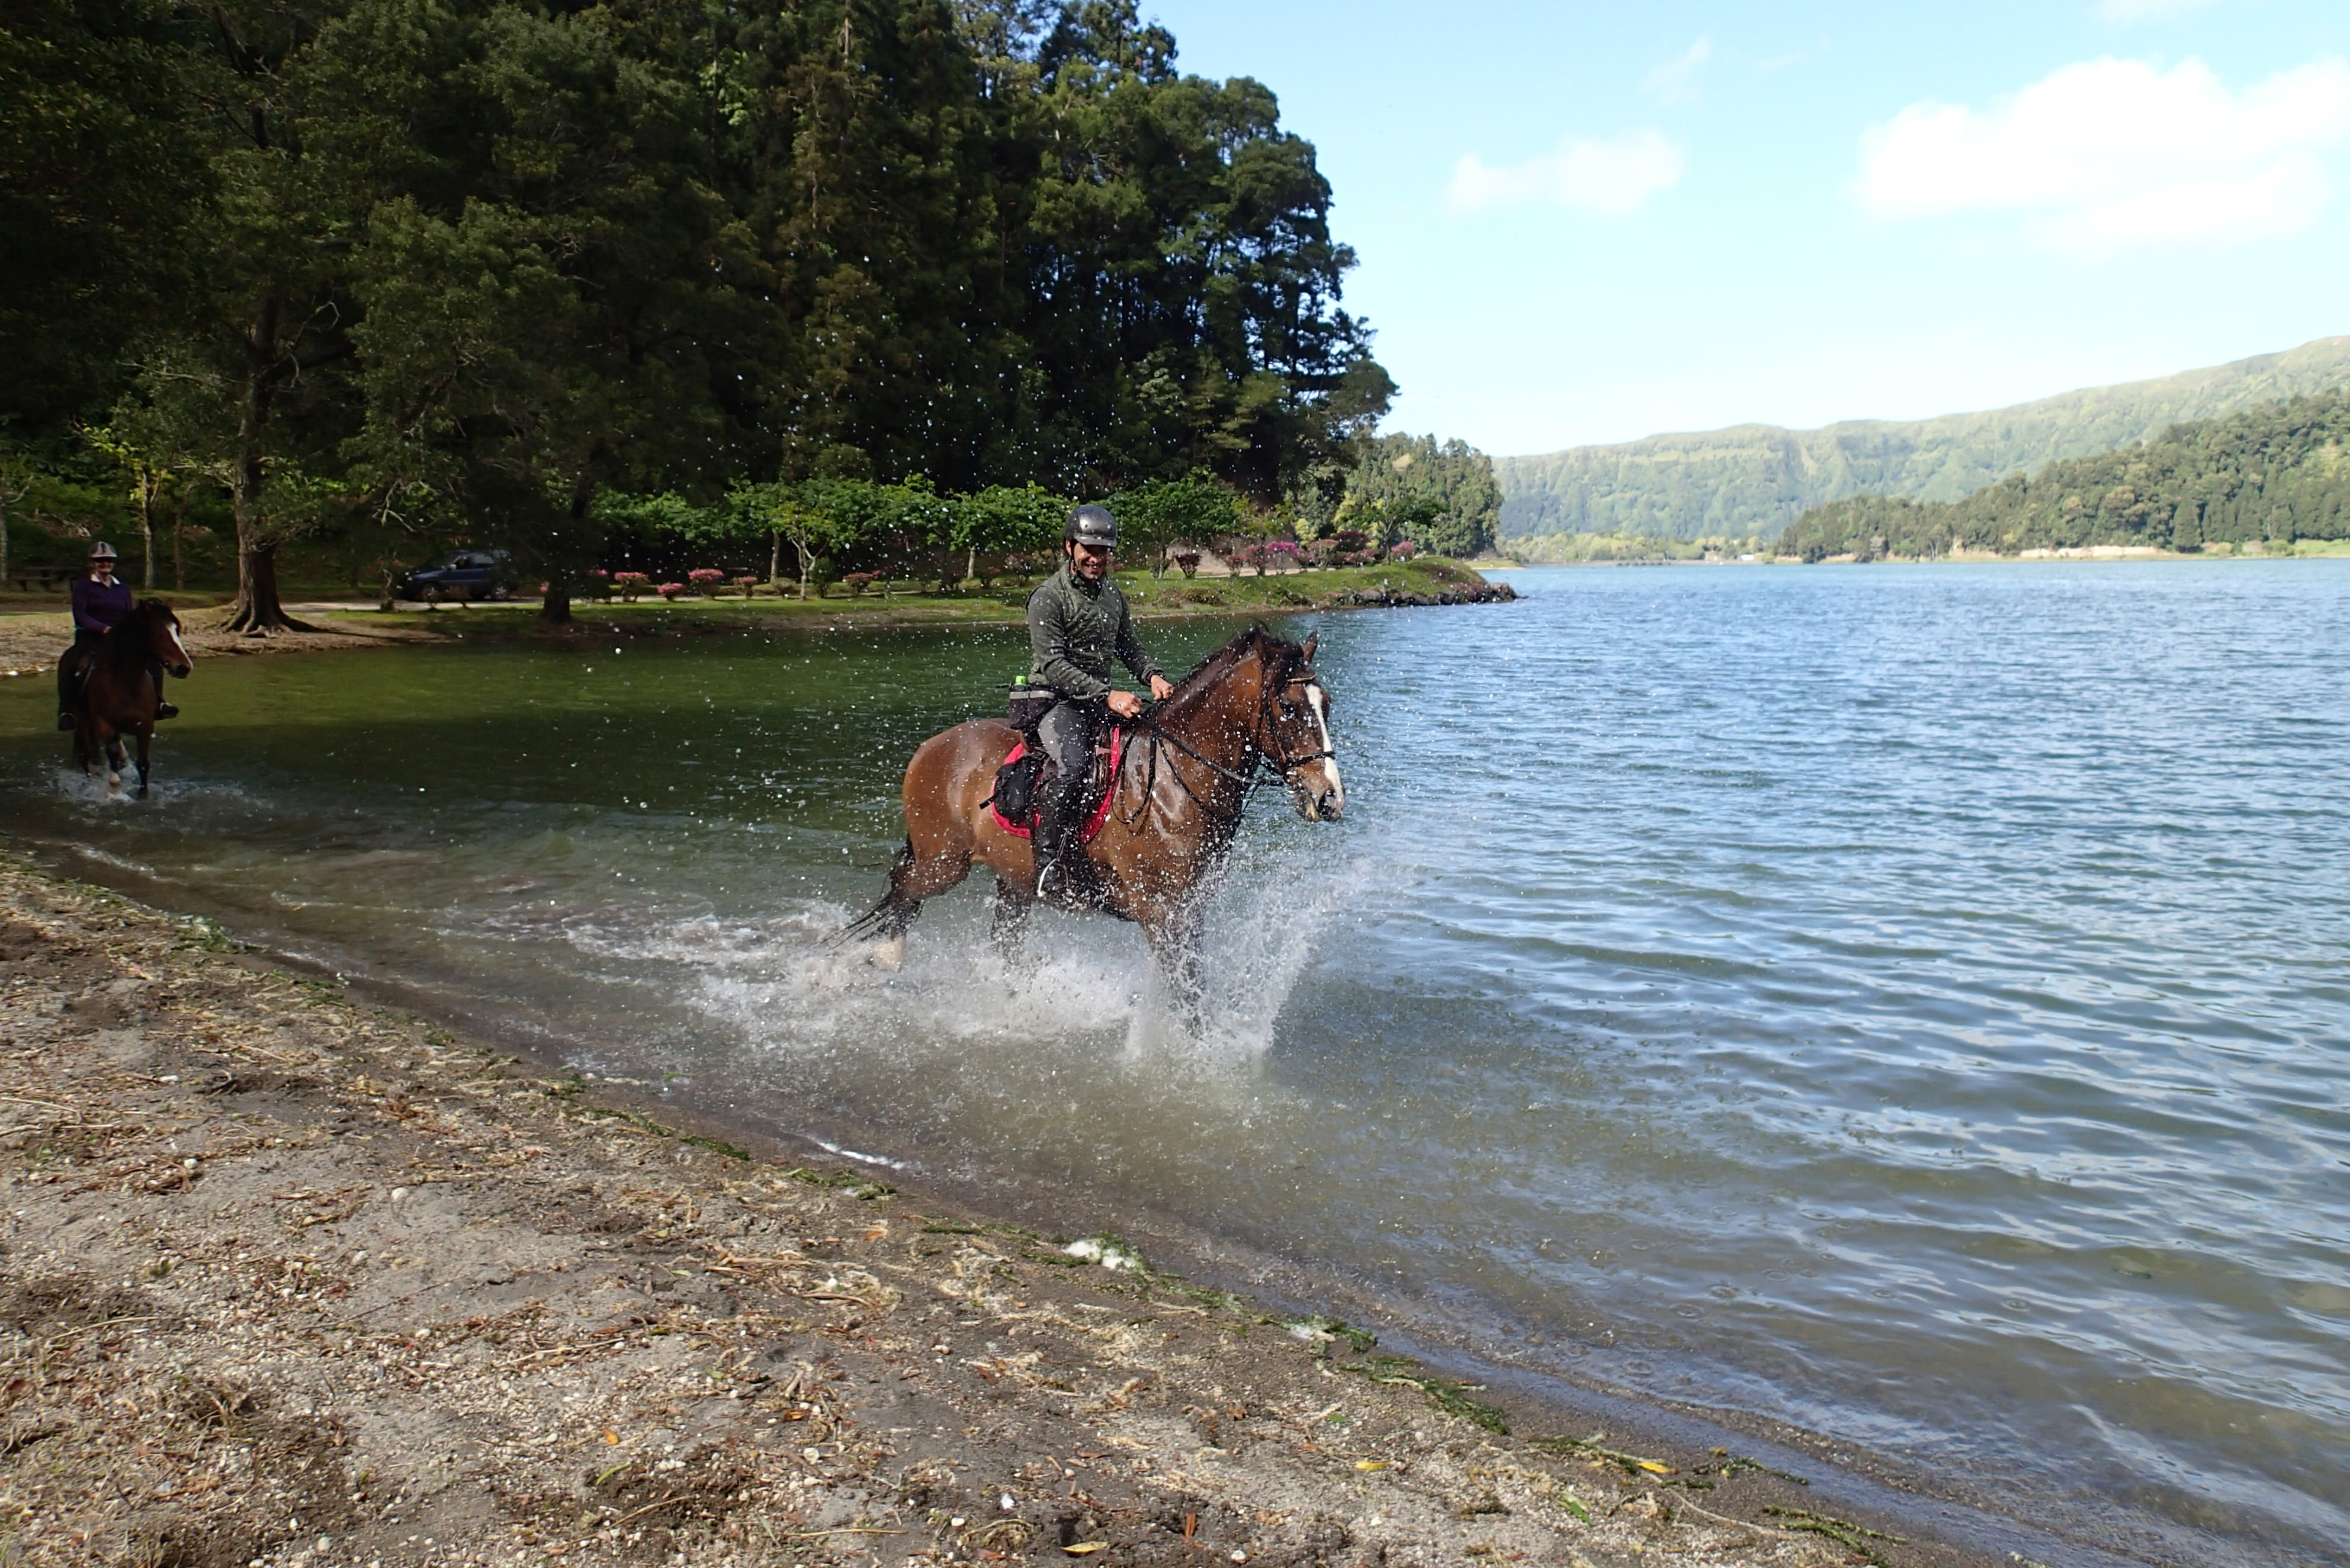 splashing along the lake shore in the azores